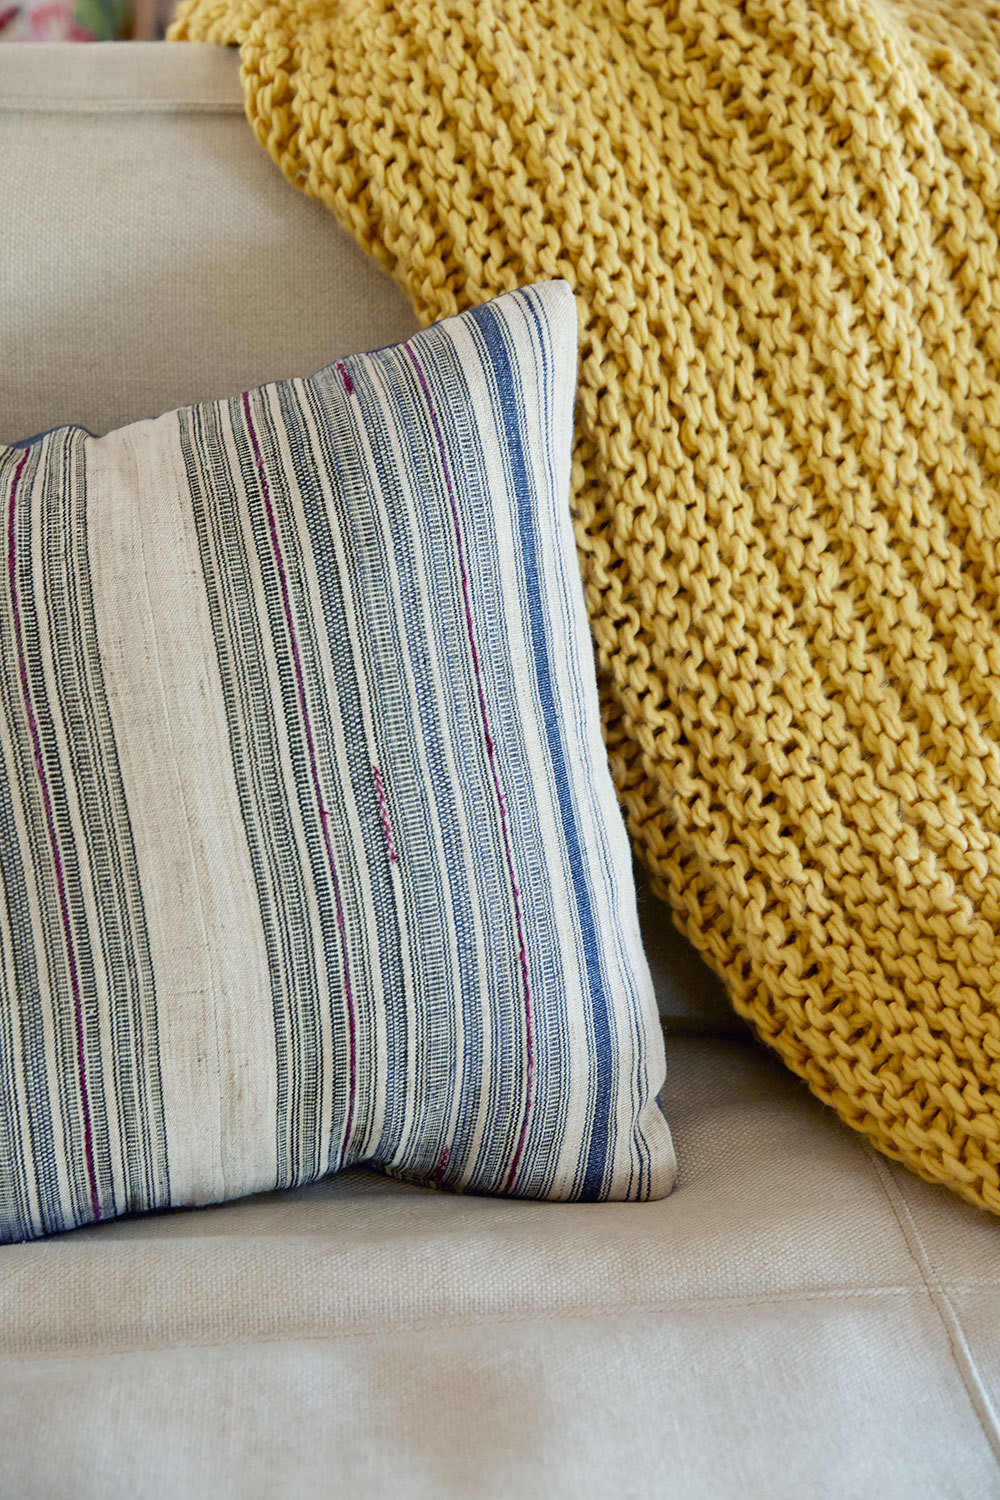 A muted striped pillow and saffron throw from West Elm add contrast and texture to the neutral sofa.